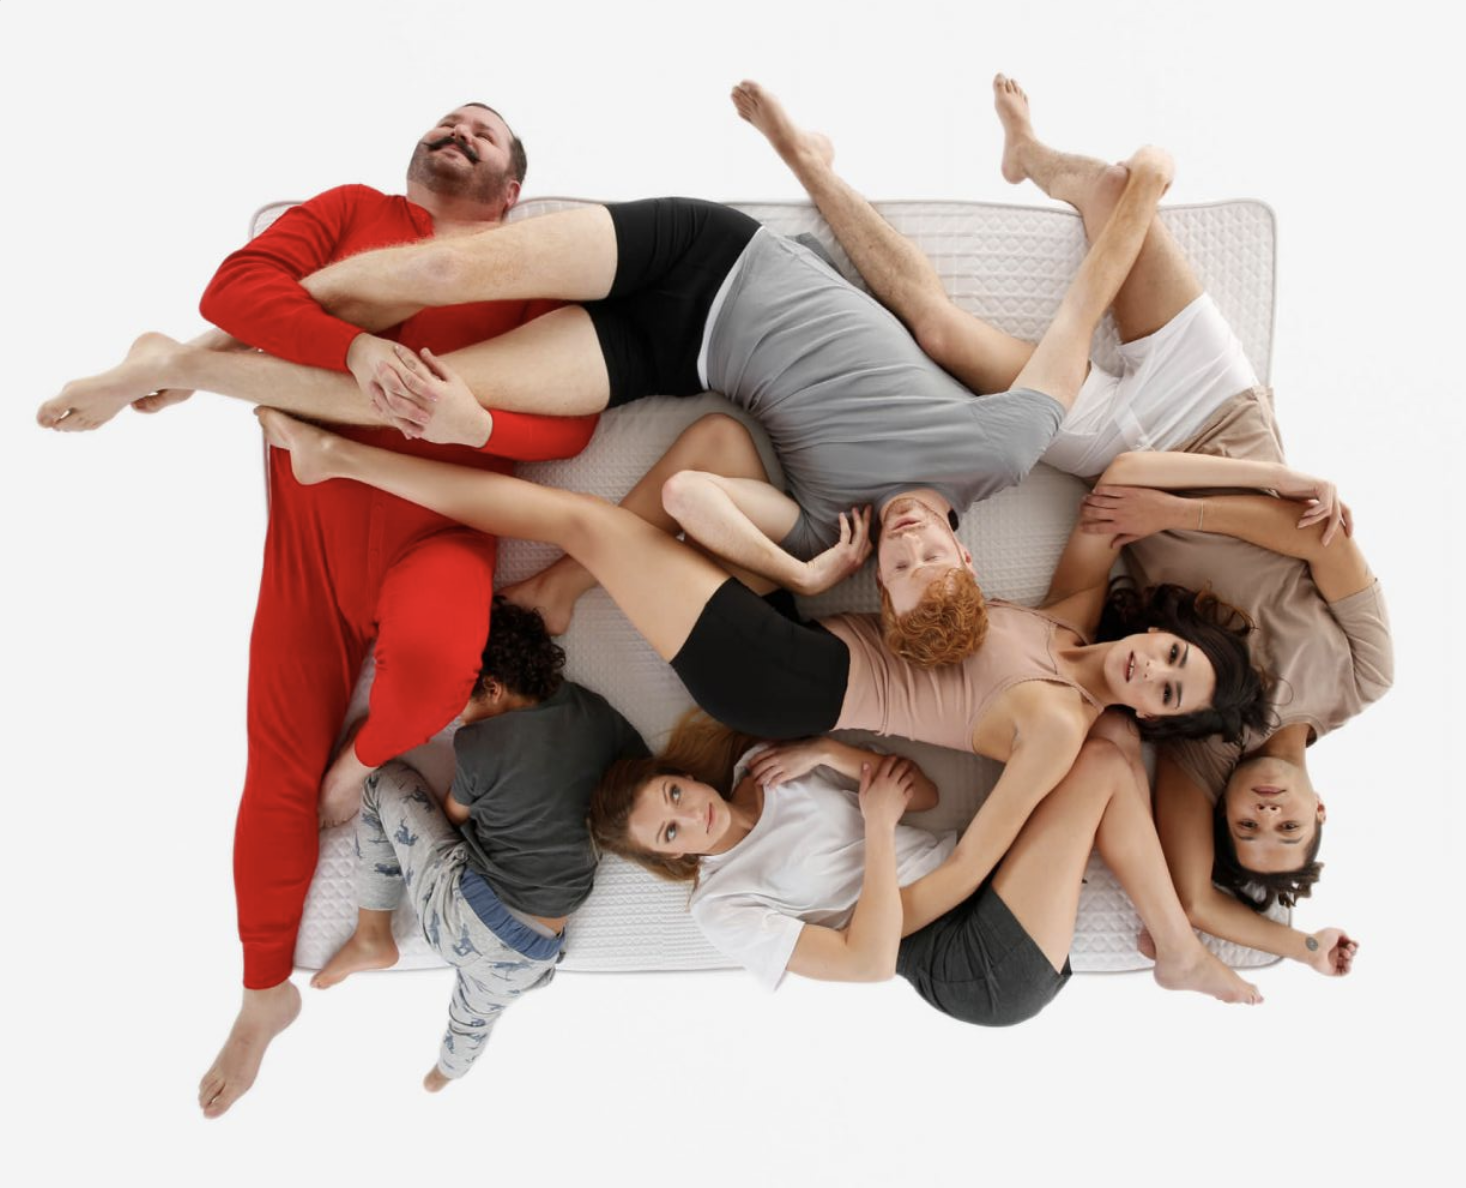 Group on people on the Tuck mattress